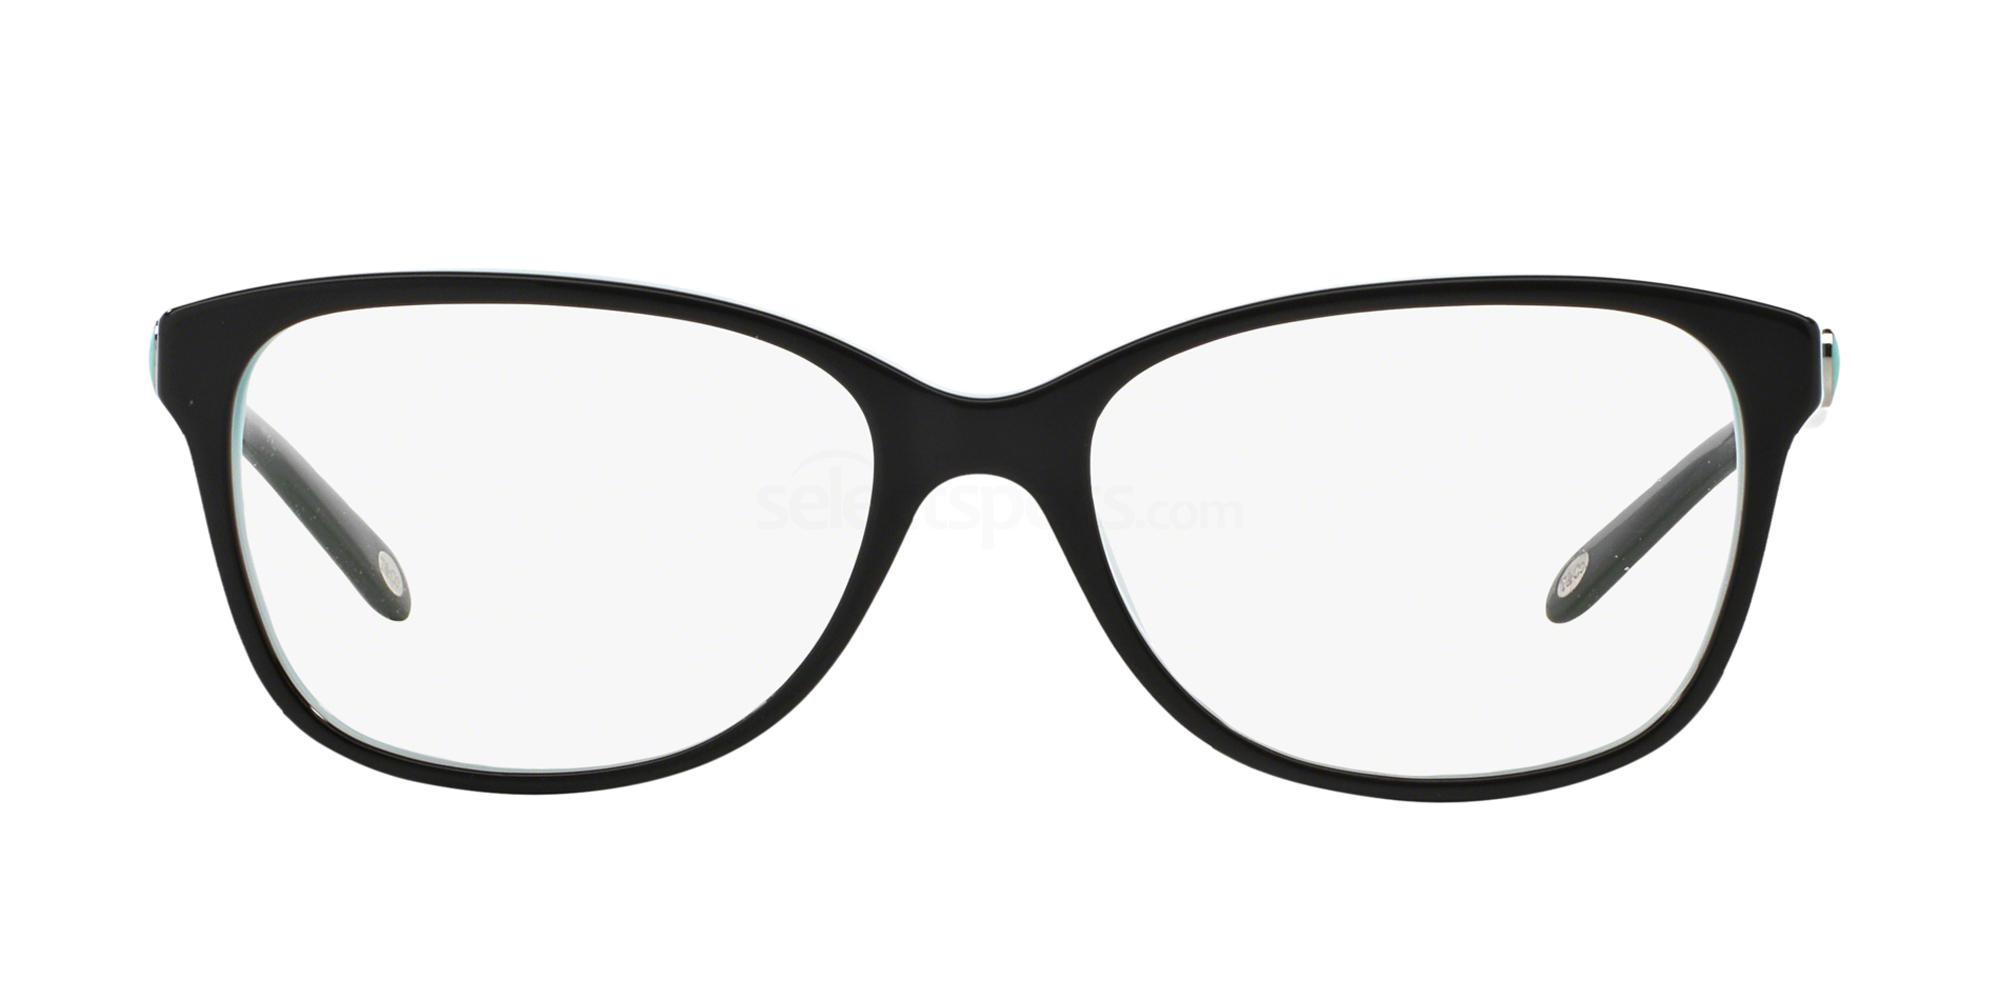 8055 TF2097 Glasses, Tiffany & Co.